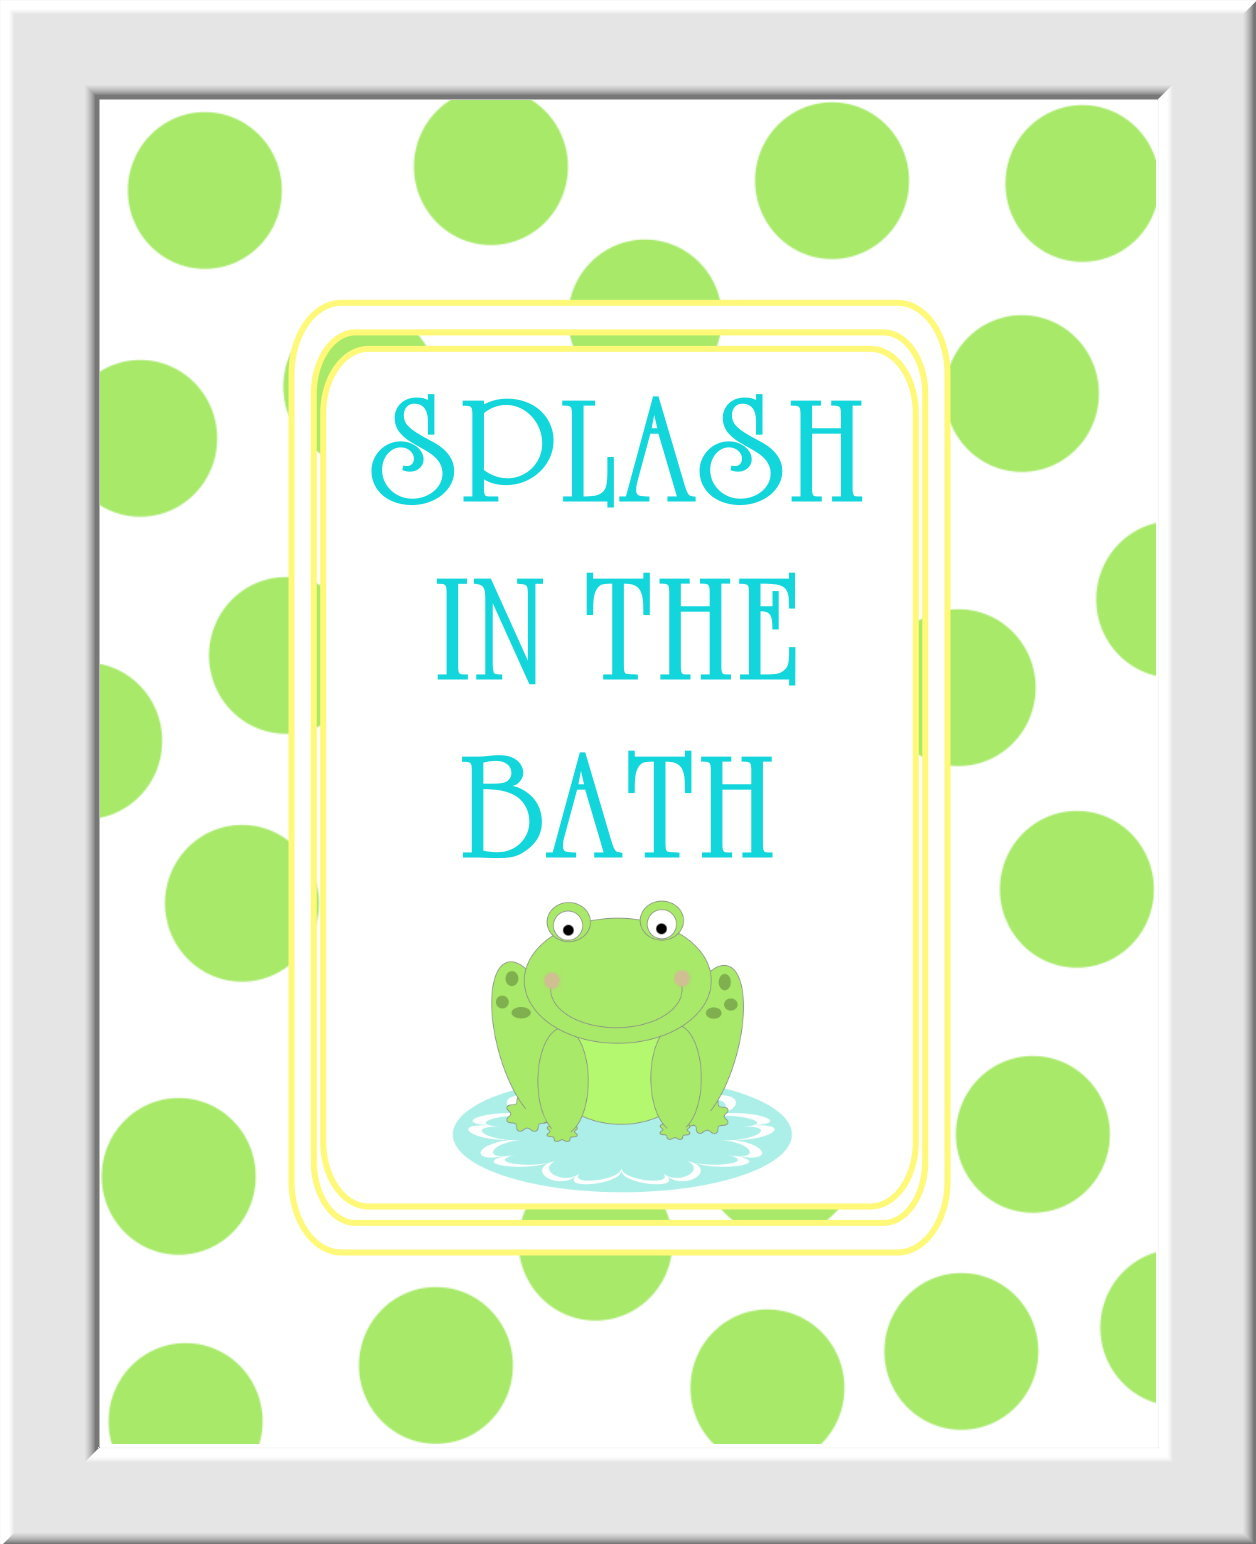 Baby Nursery Wall Art Kids Bathroom - Set of 3 - Wash Splash Brush Teeth - Green Frog Yellow Teal - Boys - Girls